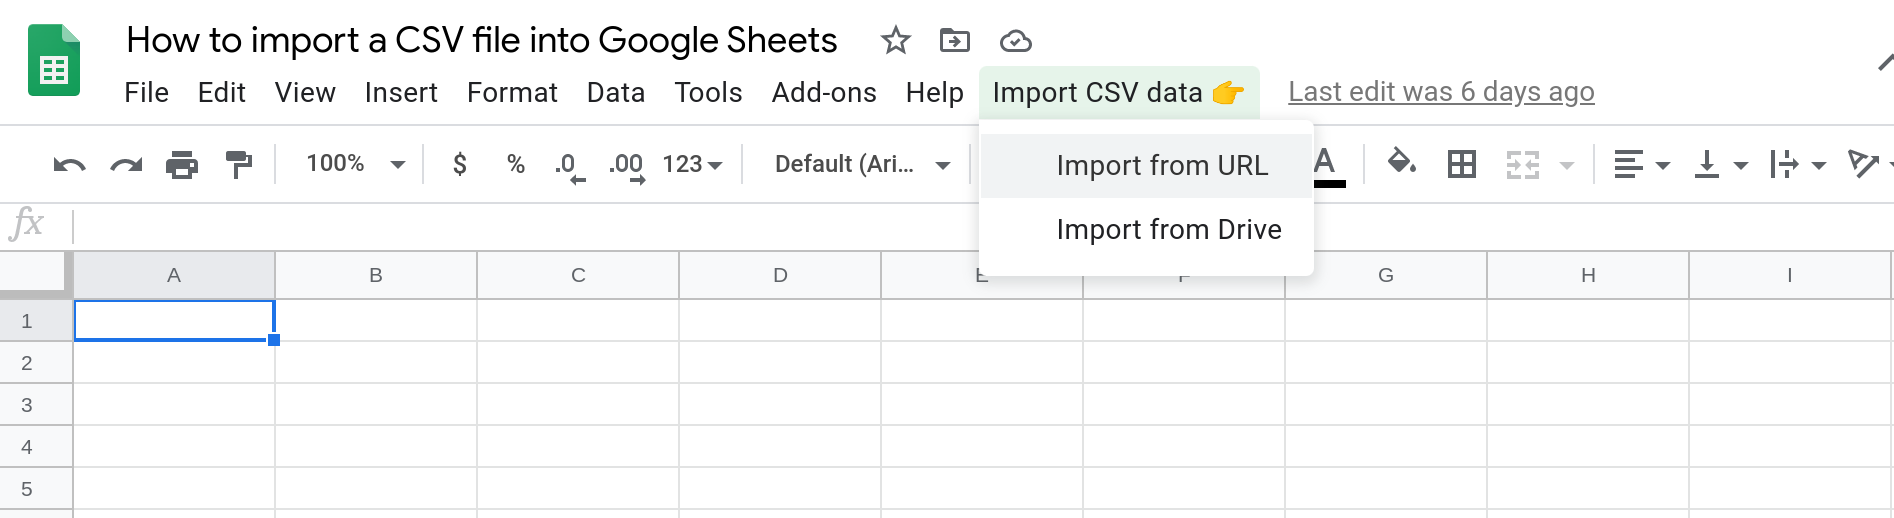 Screenshot of a Google Sheet with a custom menu that has two menu items: a) Import from URL and b) Import from Drive.